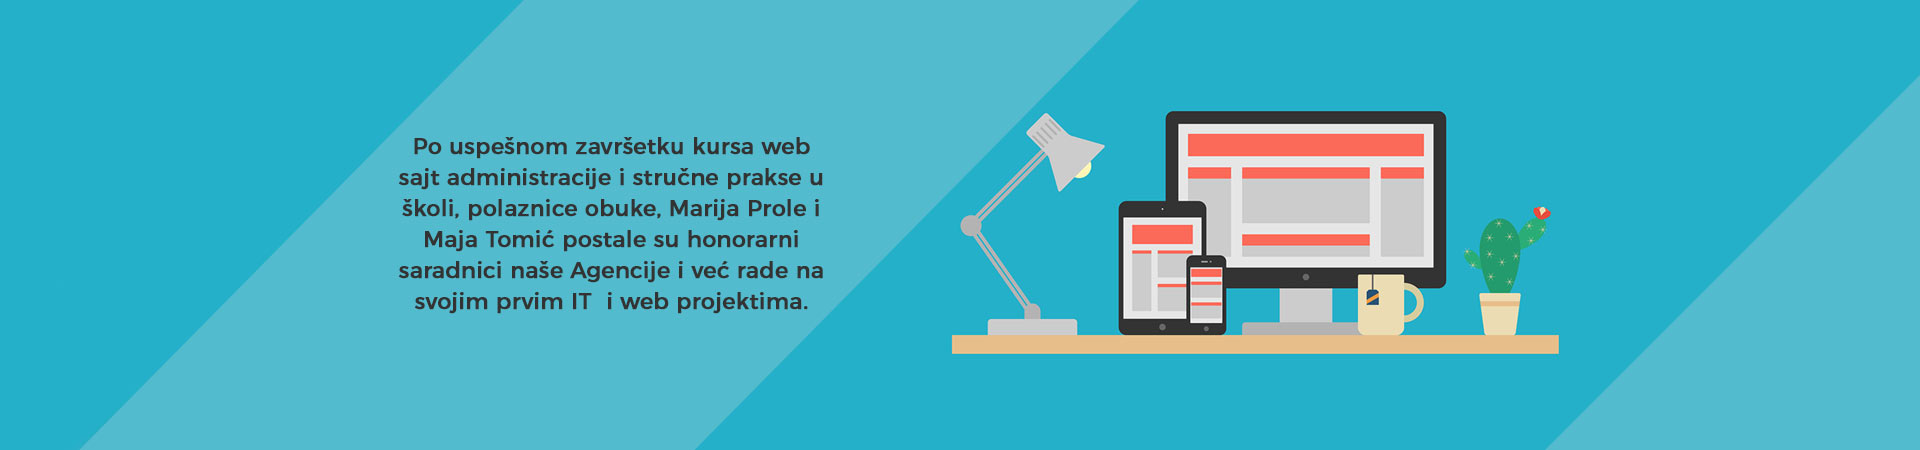 slider-it-web-saradnici